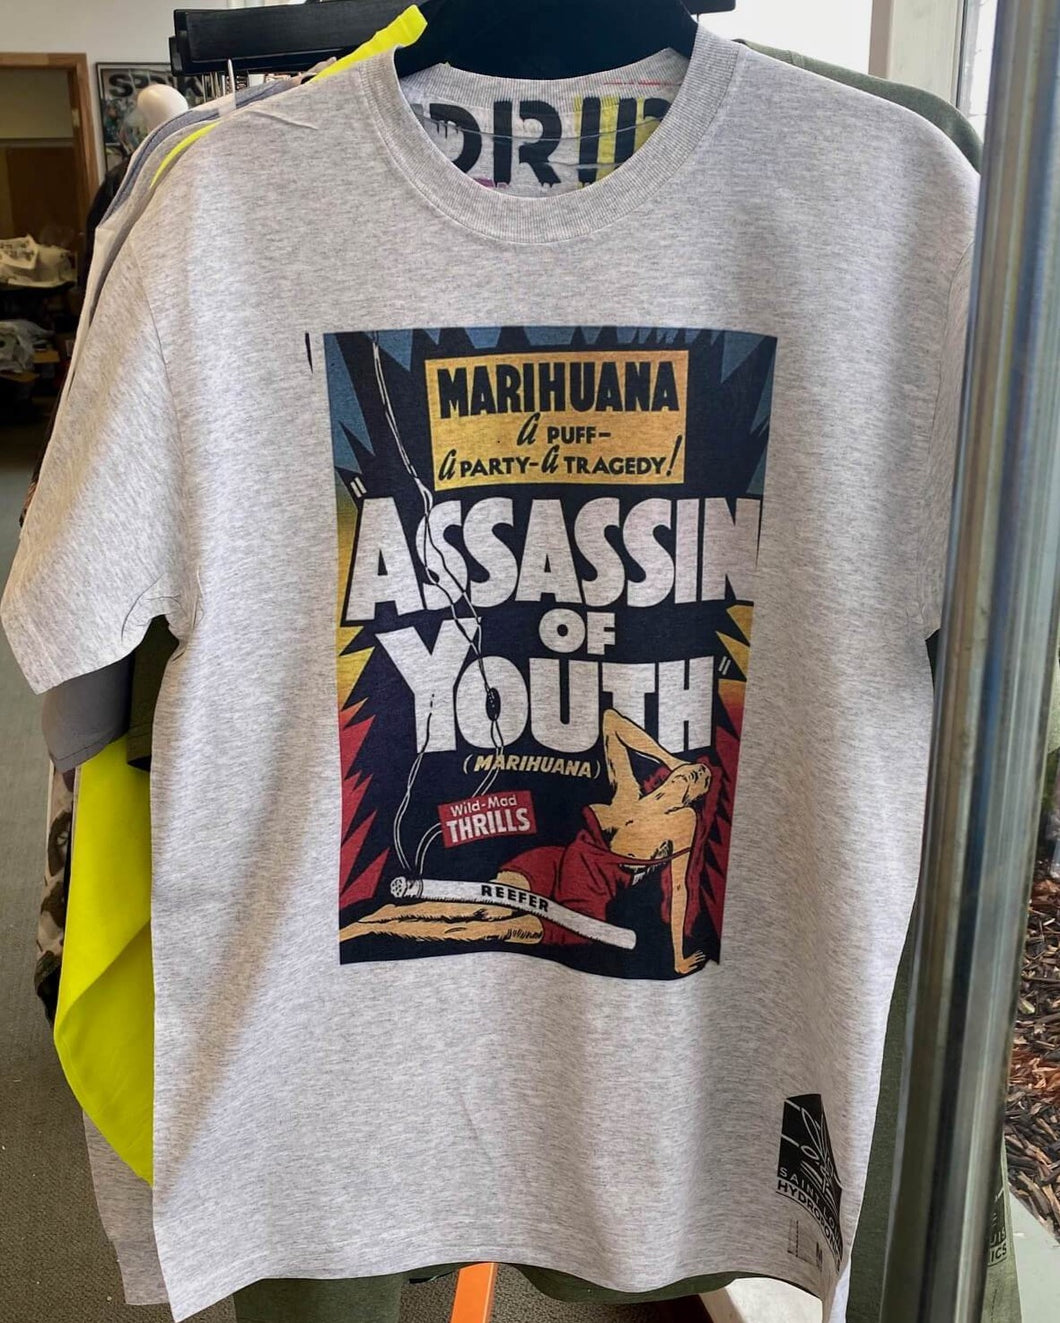 Marihuana assassin of youth vintage tshirt